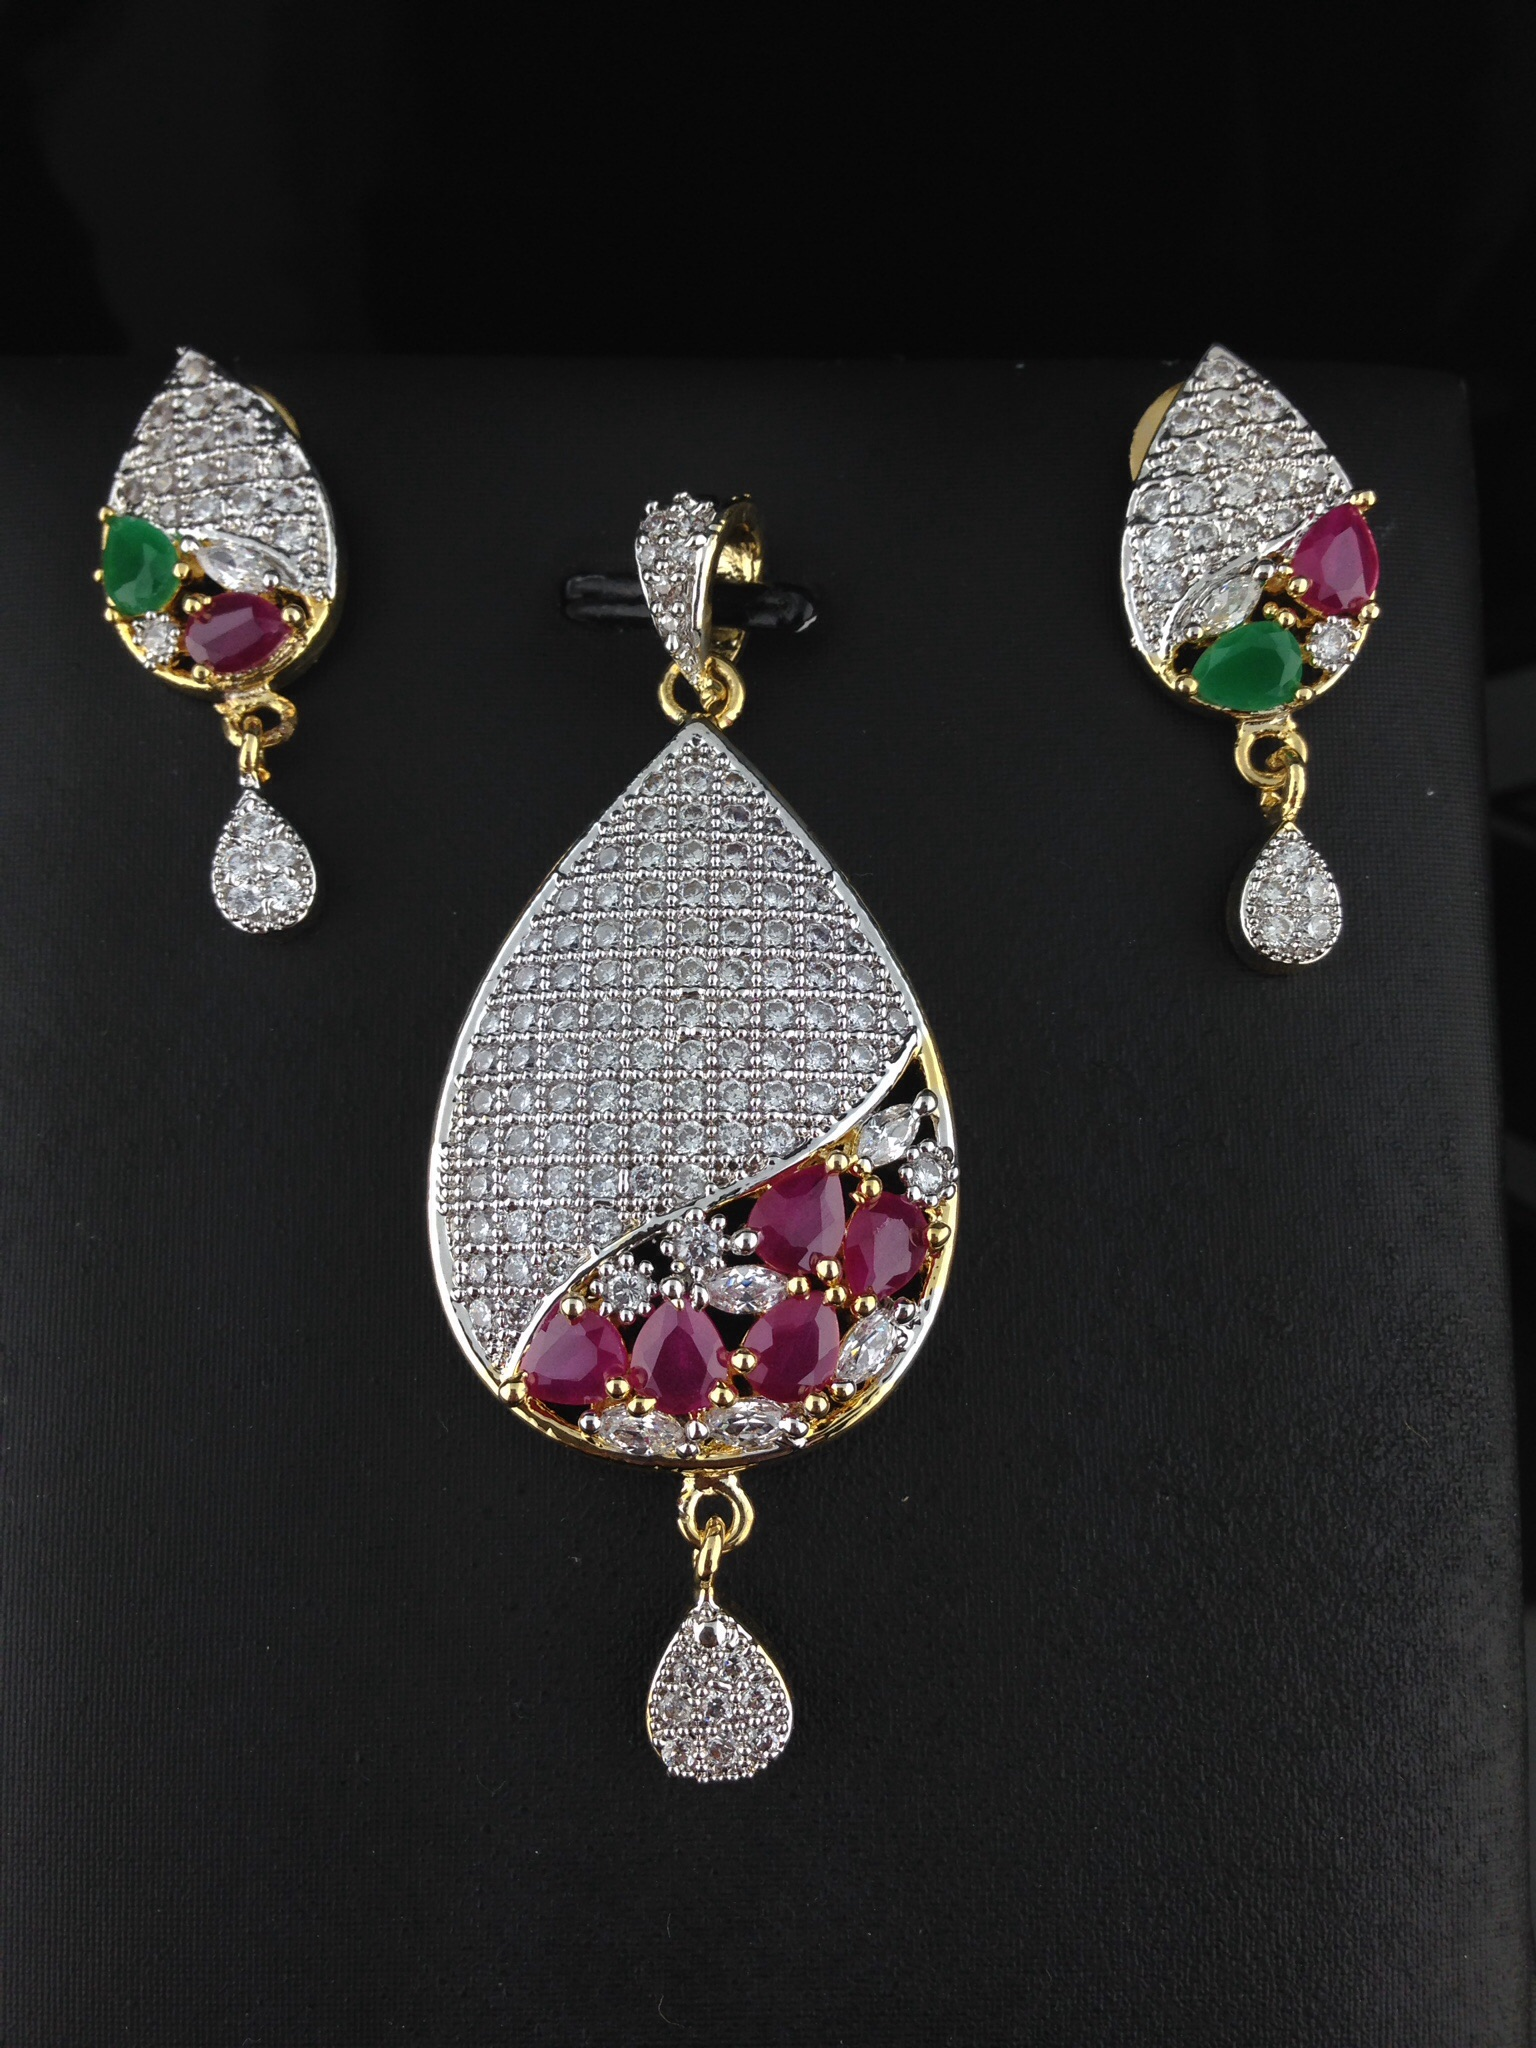 American Diamond CZ Teardrop Pendant Set With Rubies and Emerald